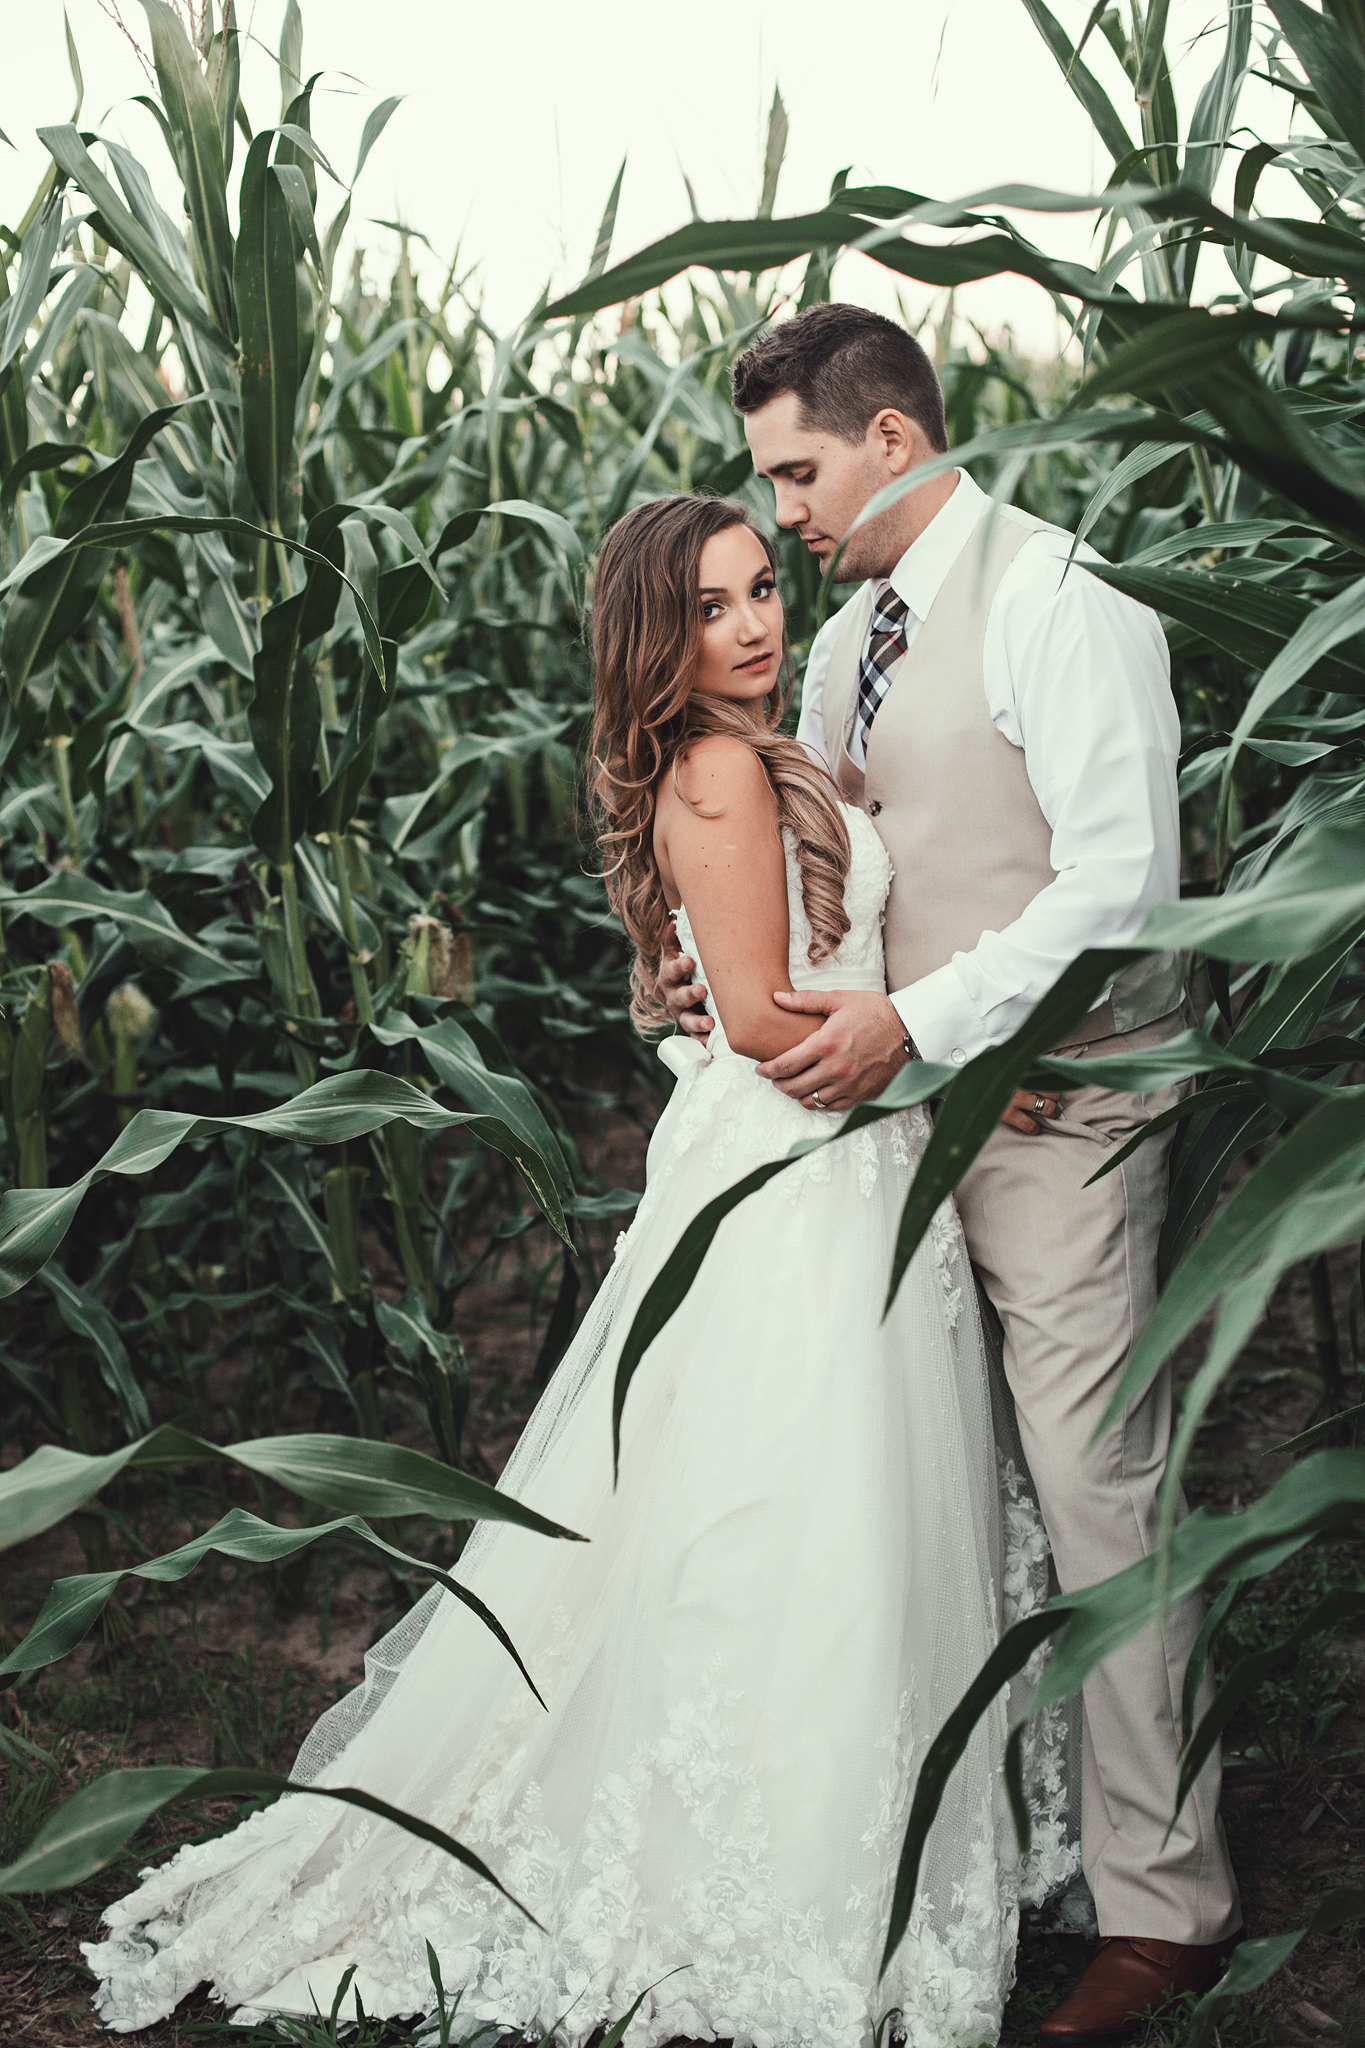 Cincinnati-Dayton-OH-Wedding-Photography-Family-Farm-Venue-Traveling-Photographer-153.jpg